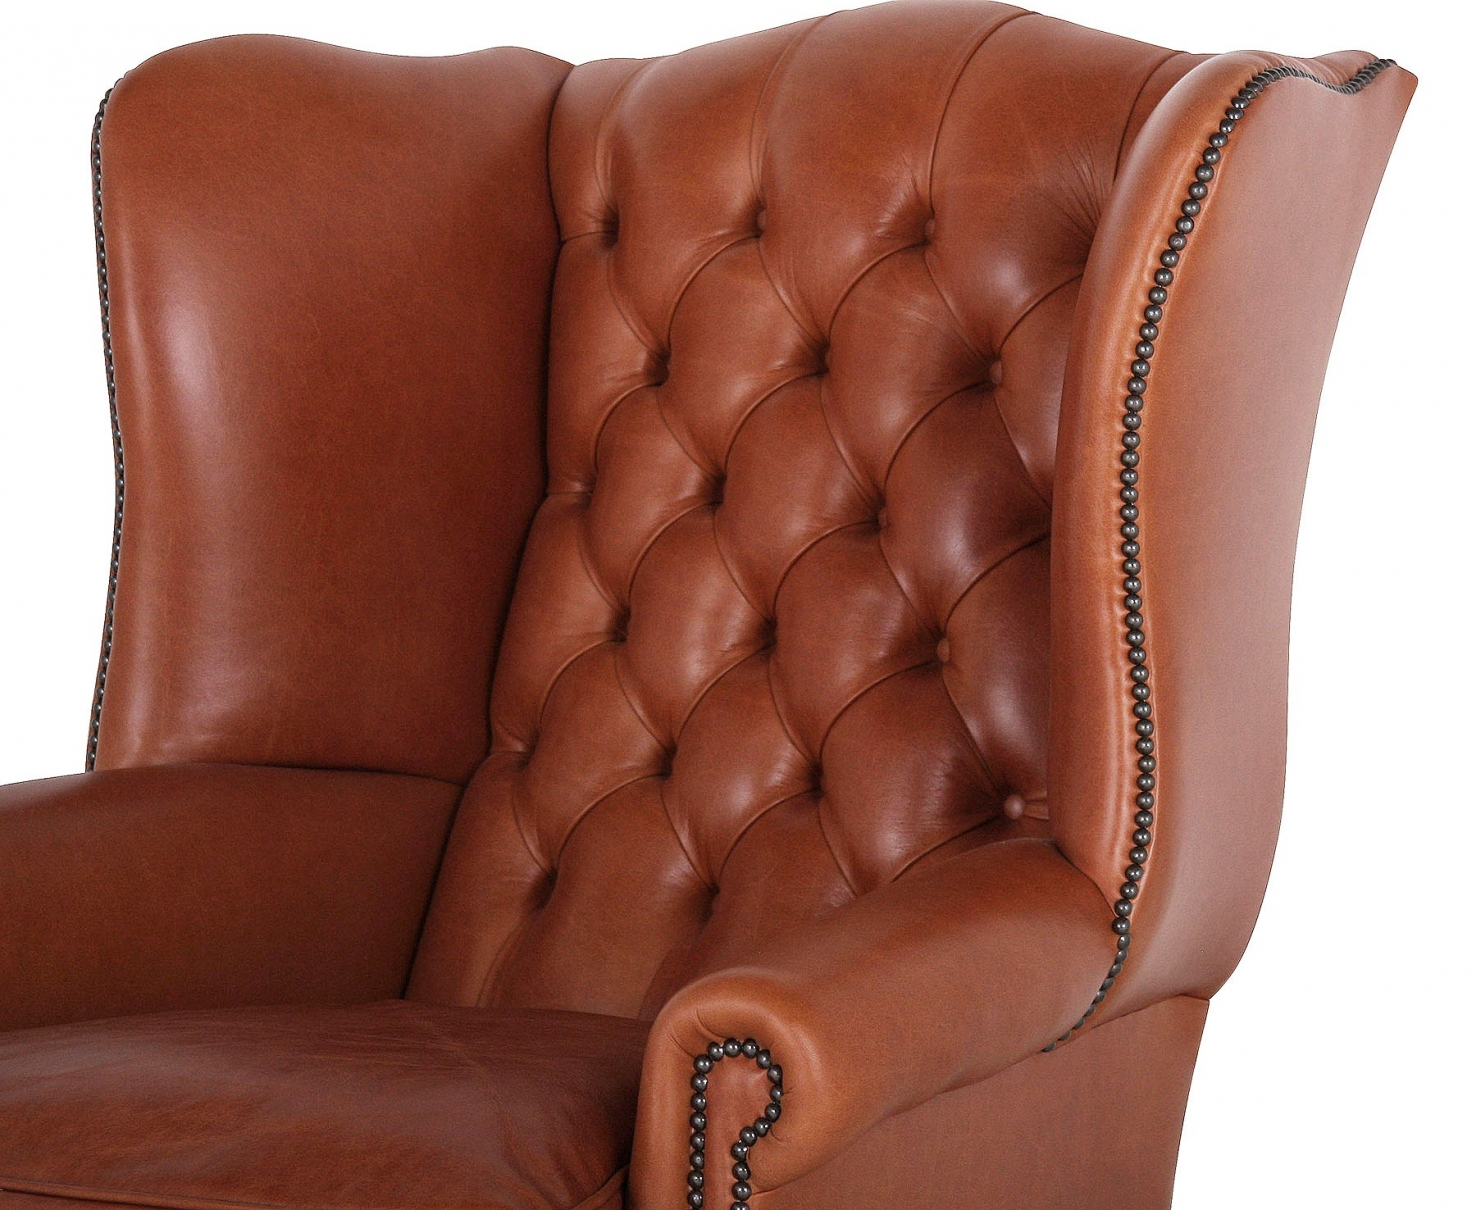 Coleridge traditional buttoned wing chair in Tan leather